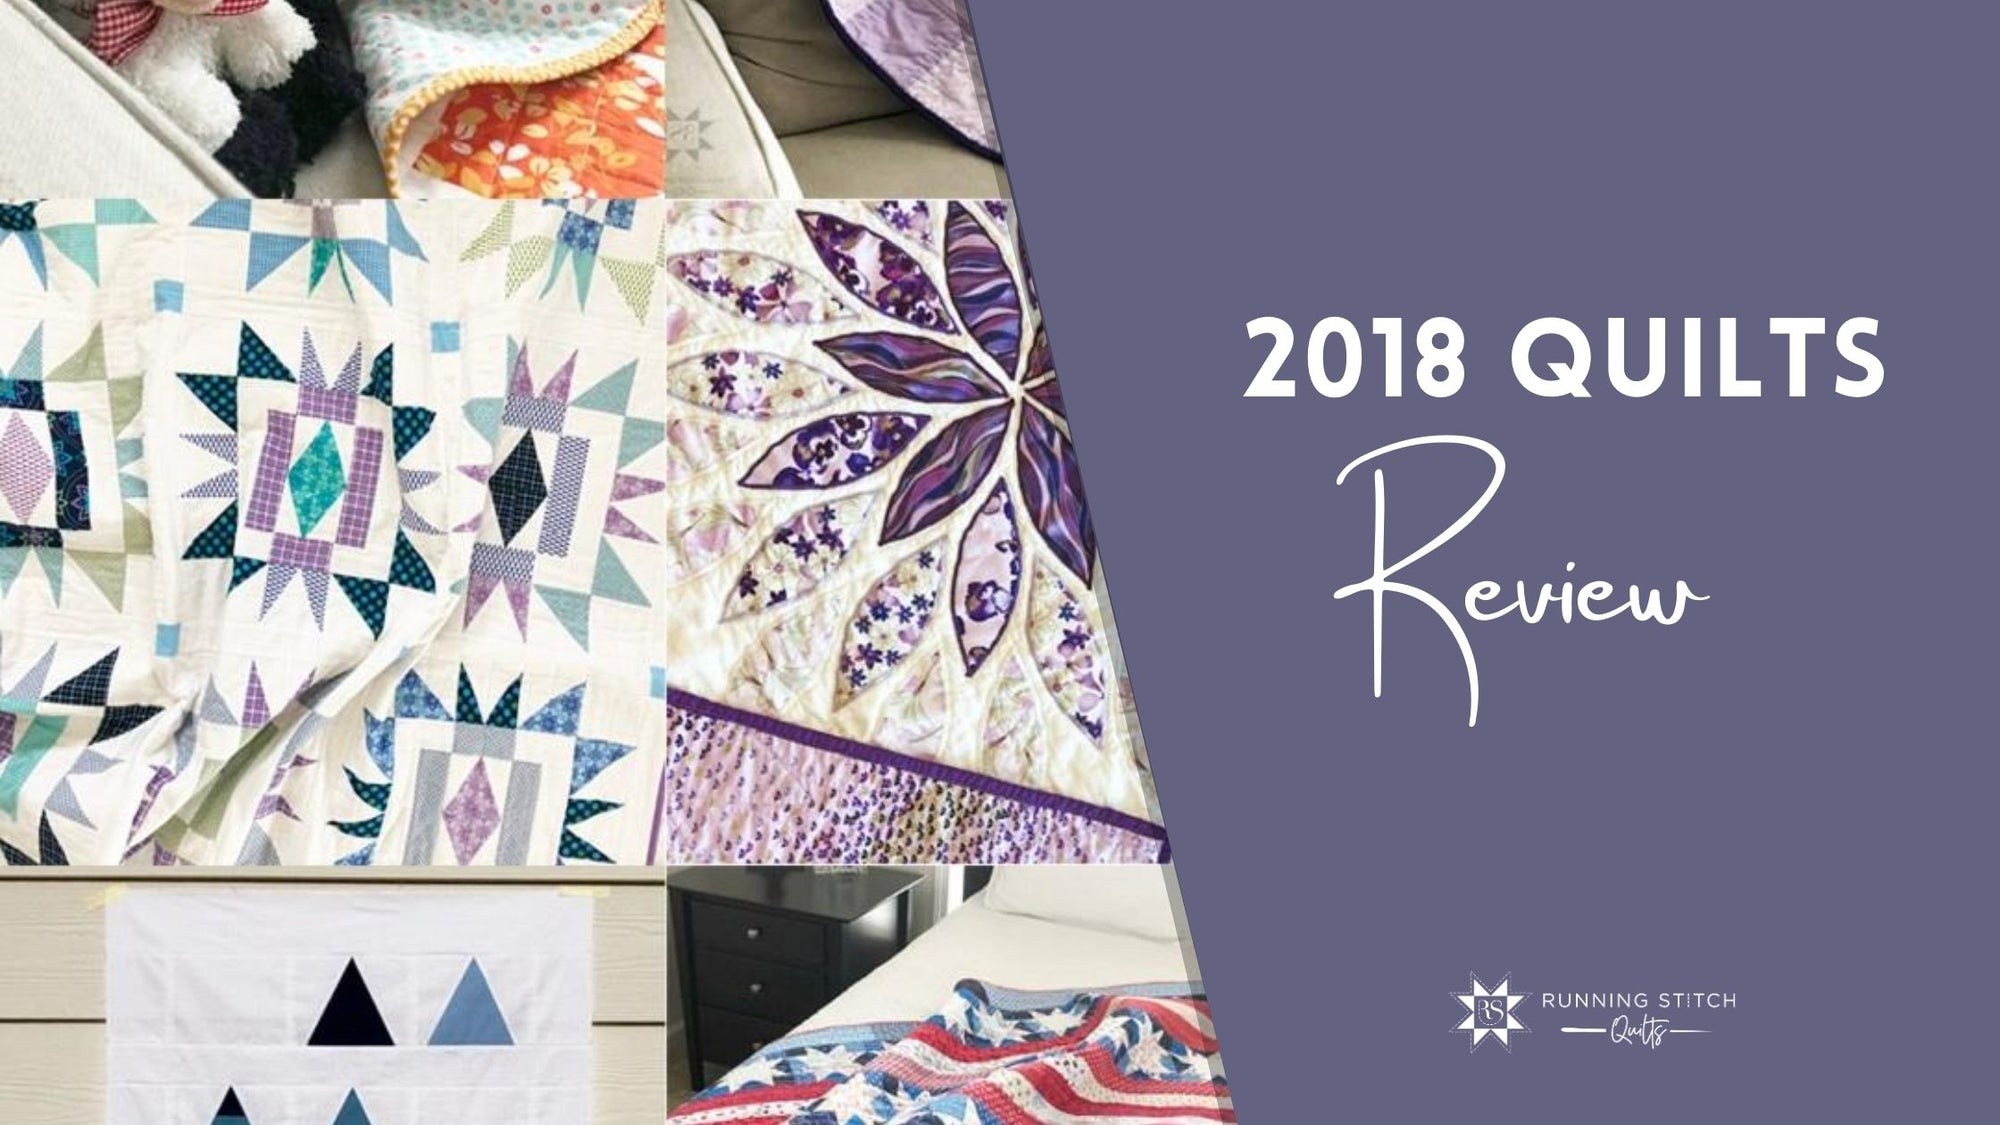 2018 Quilts in Review